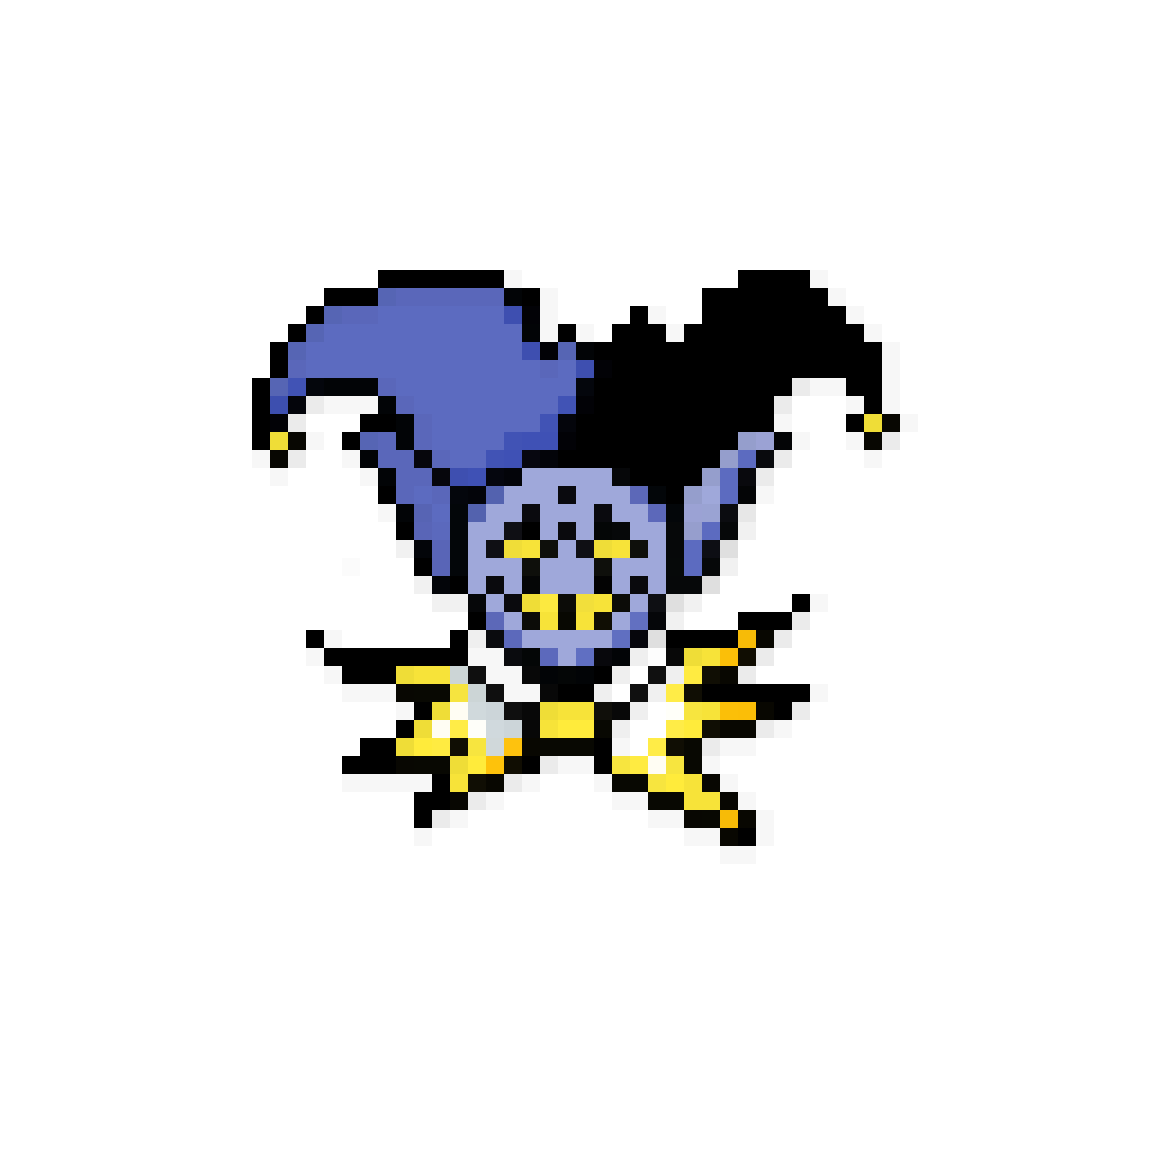 The ultimate jevil head by MonoandSnow